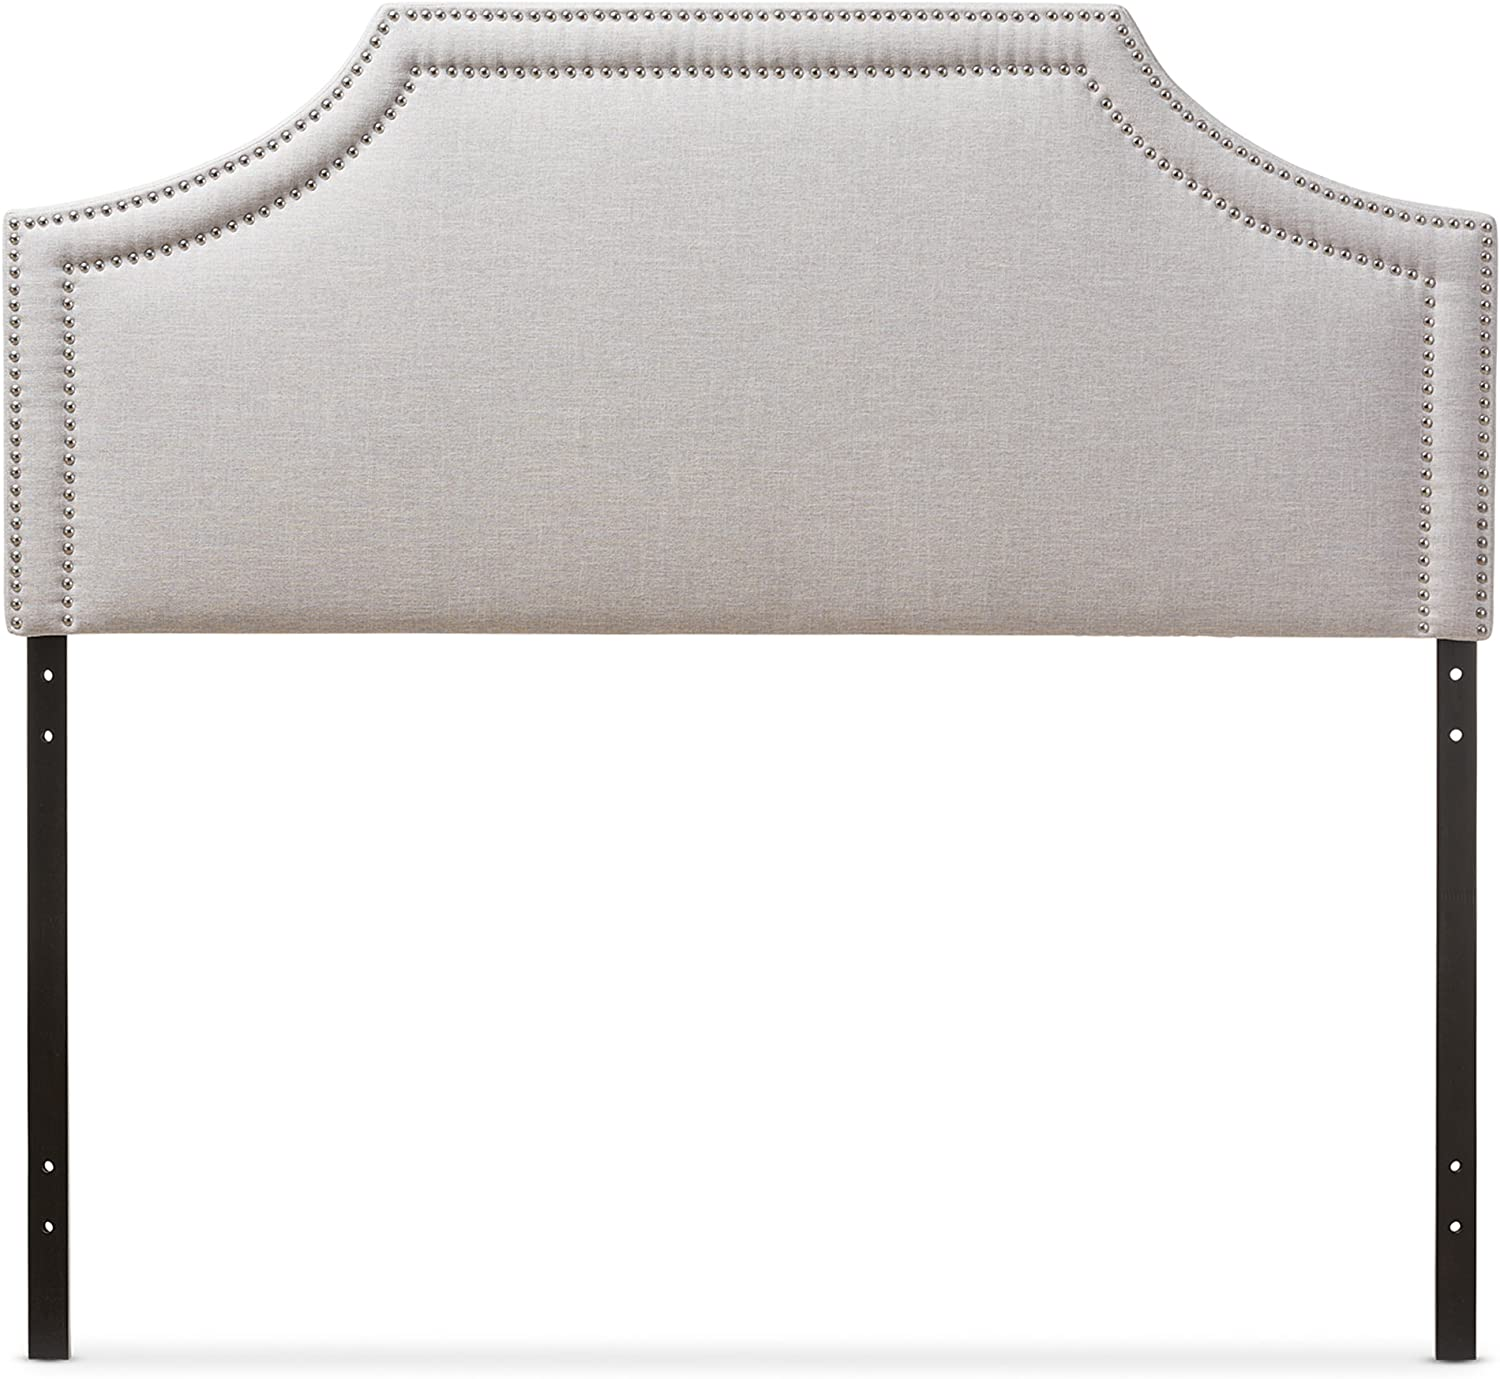 Baxton Studio Guifford Modern Contemporary Fabric Upholstered Headboard, Queen, Greyish Beige